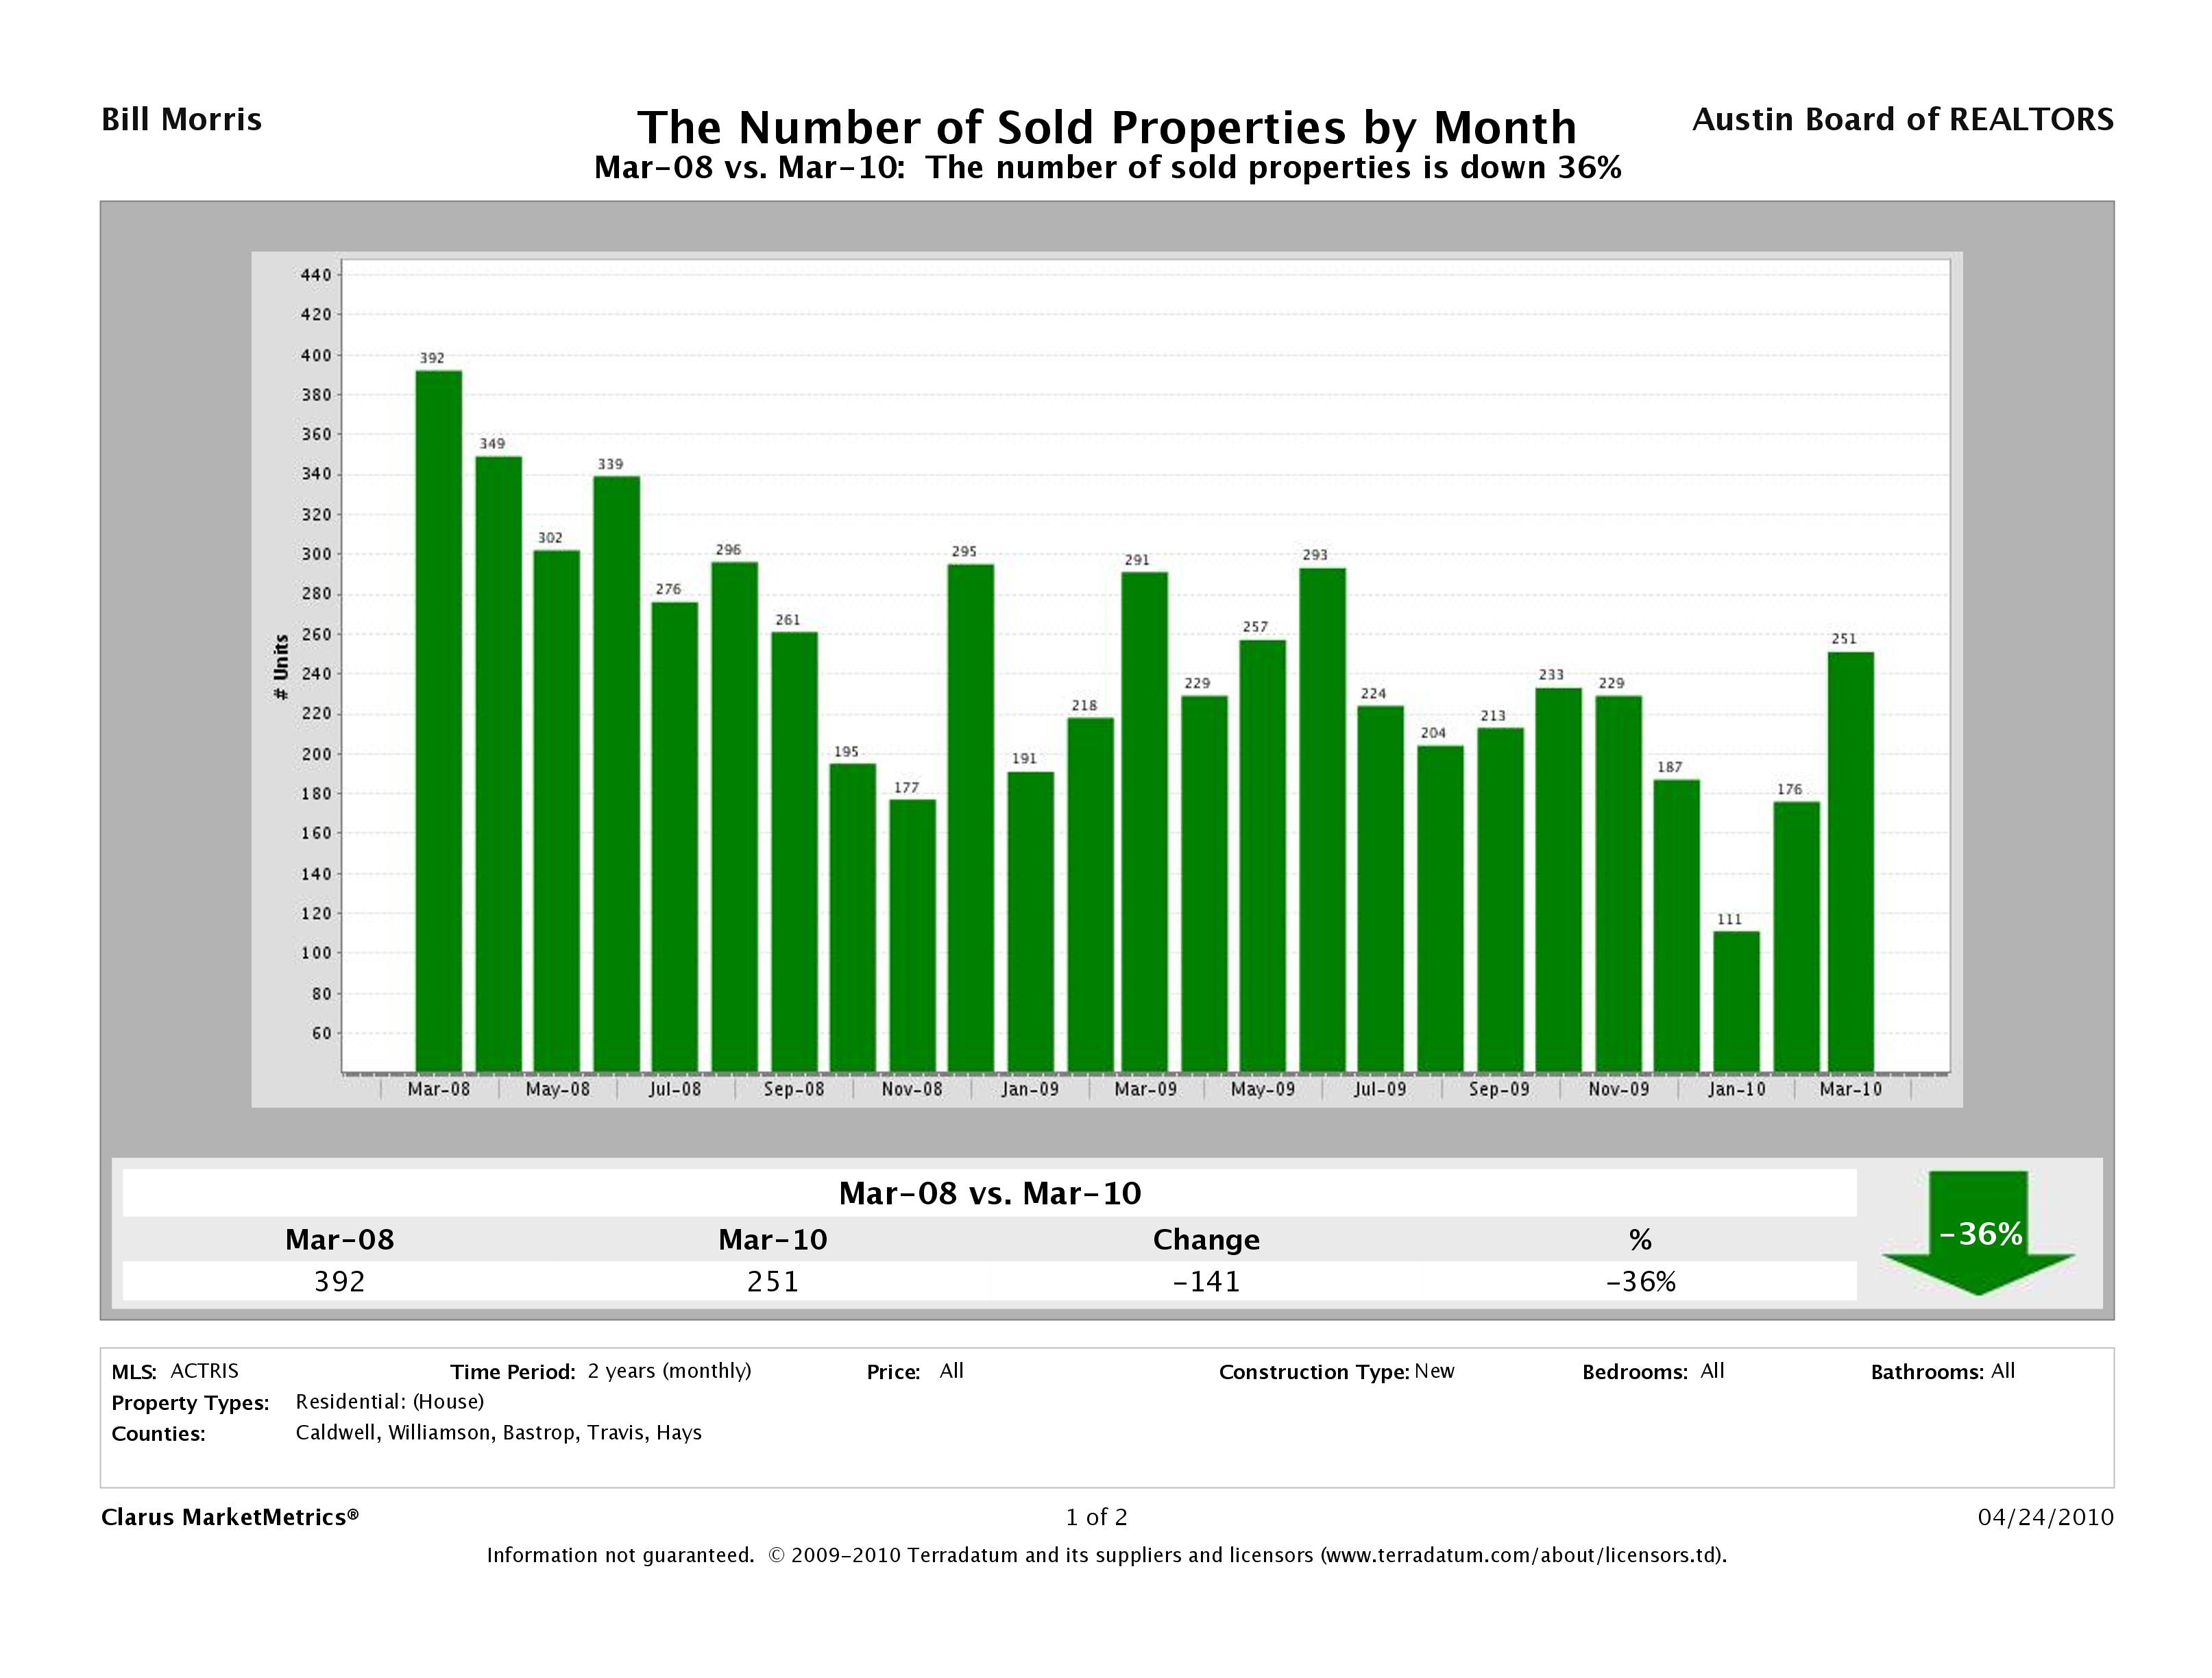 New Homes Sold